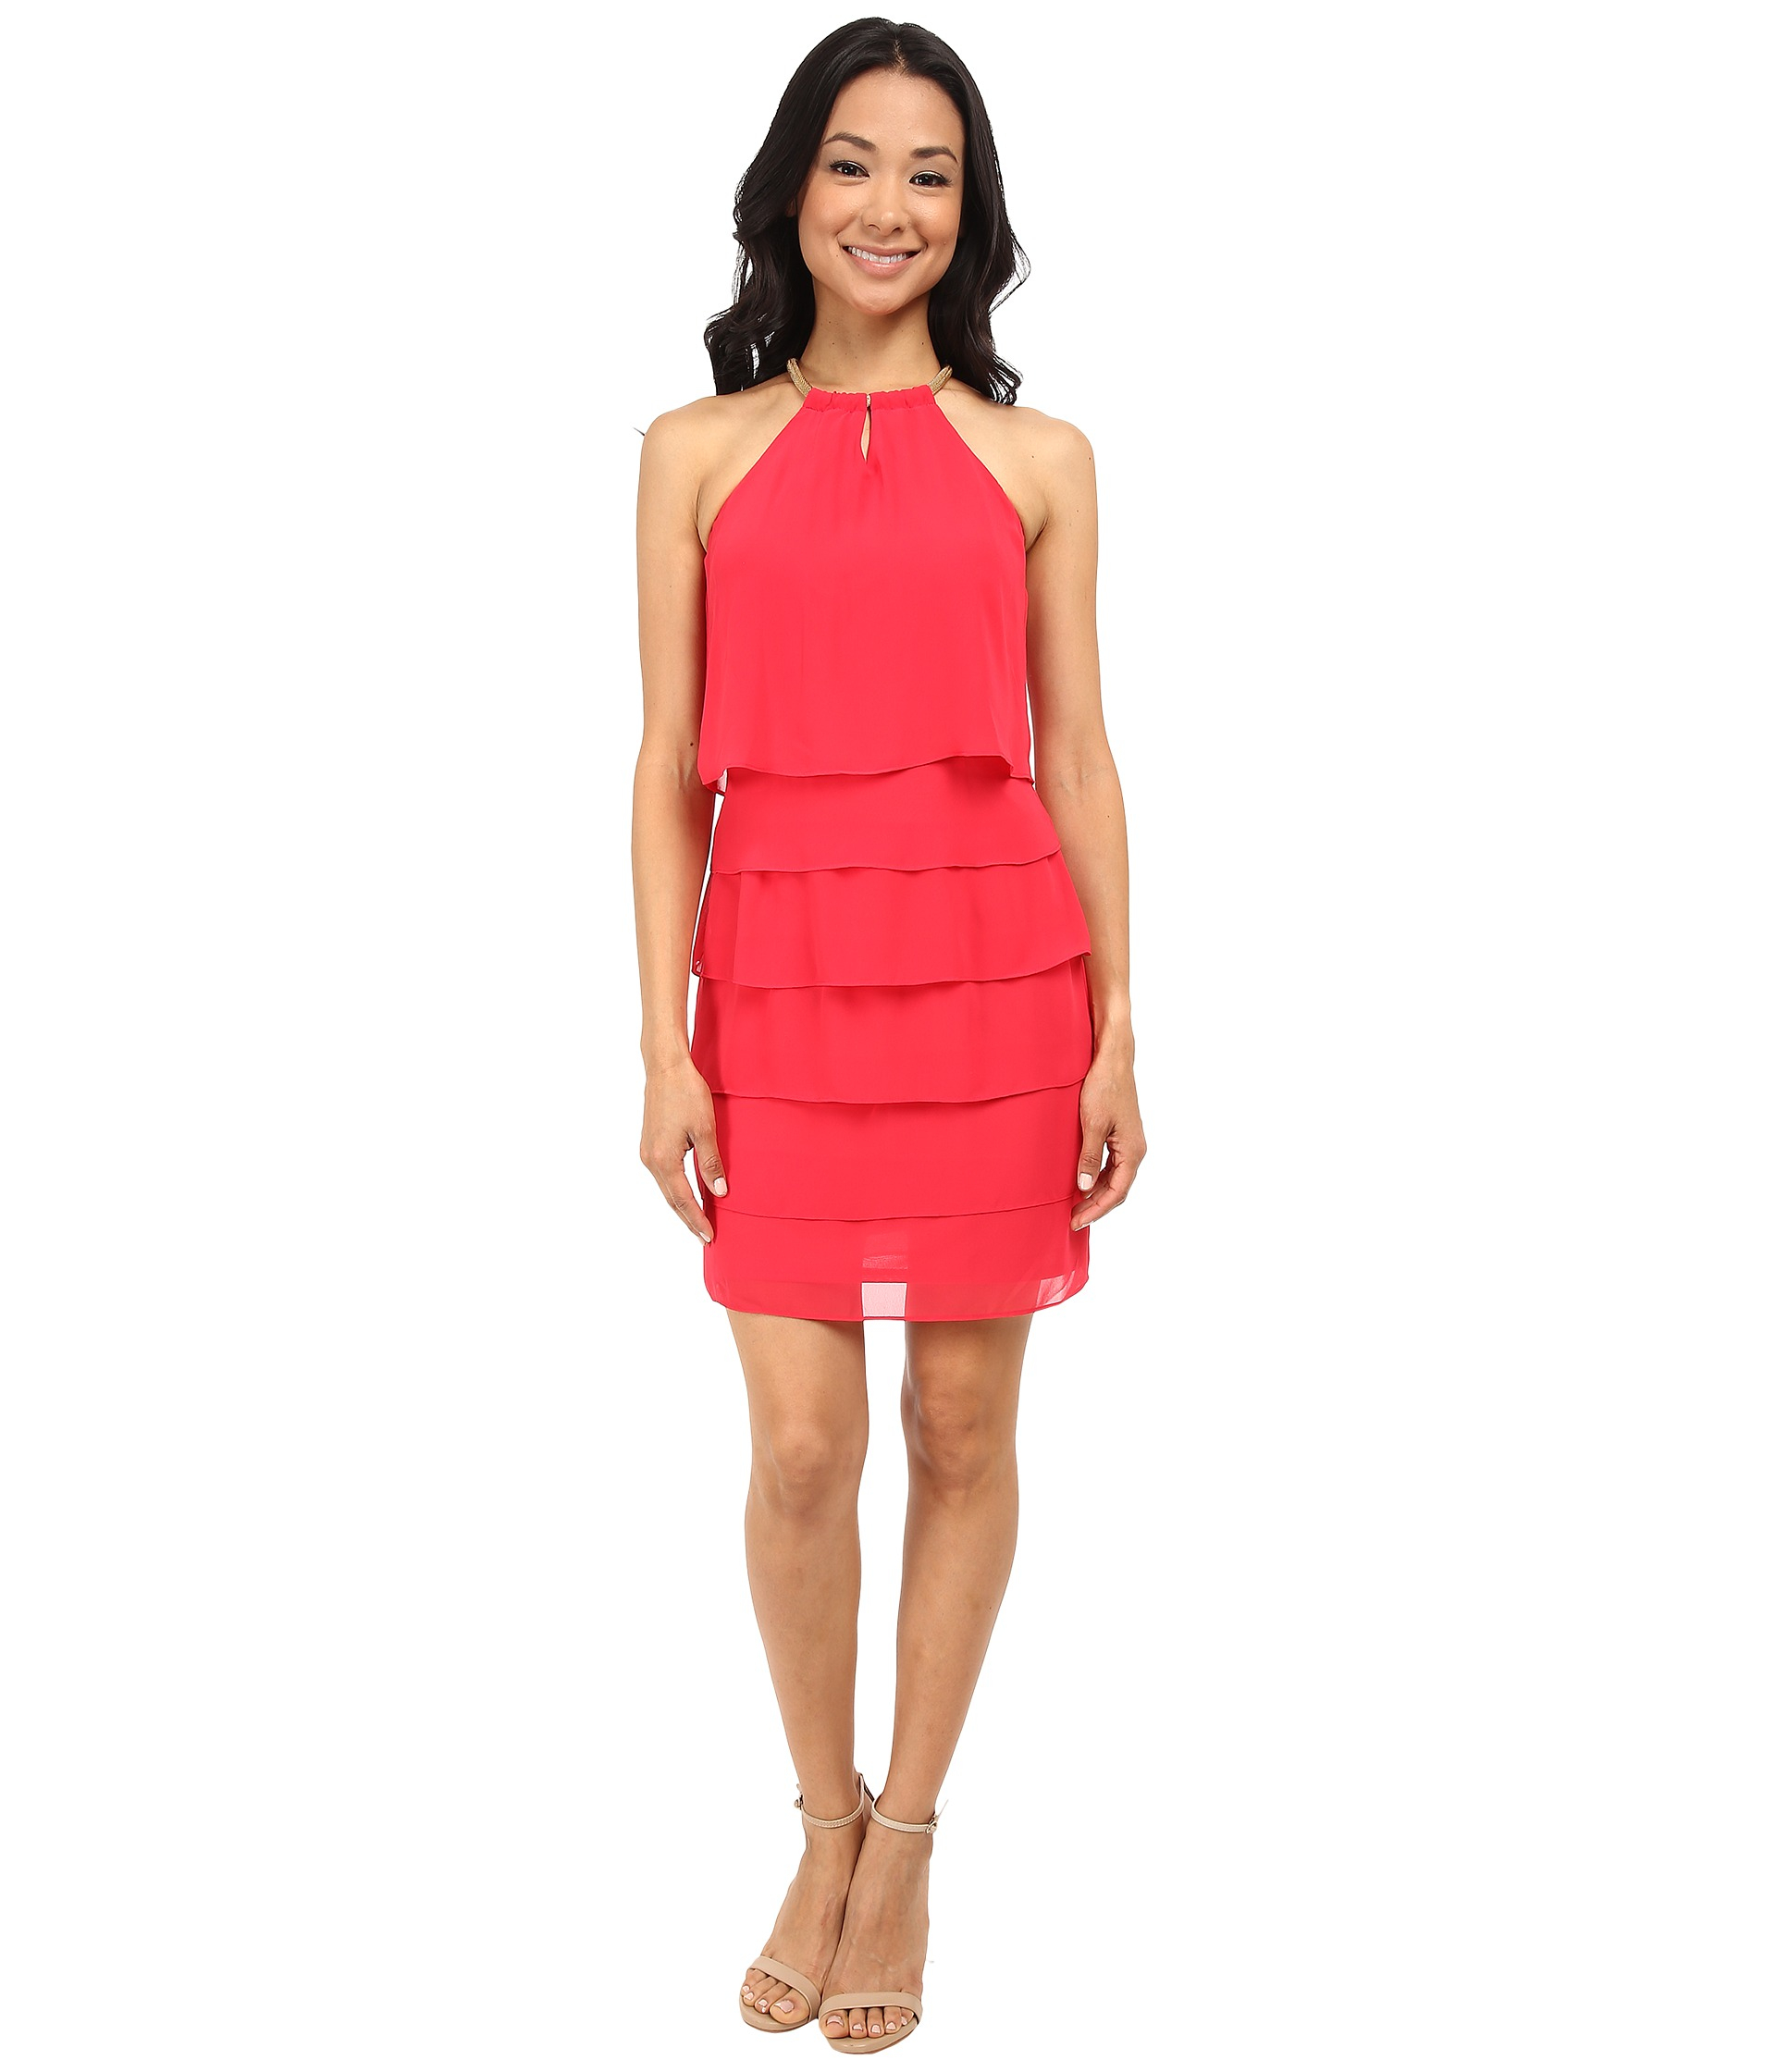 162ede29e4 Laundry by Shelli Segal Tiered Chiffon Cocktail Dress in Red - Lyst